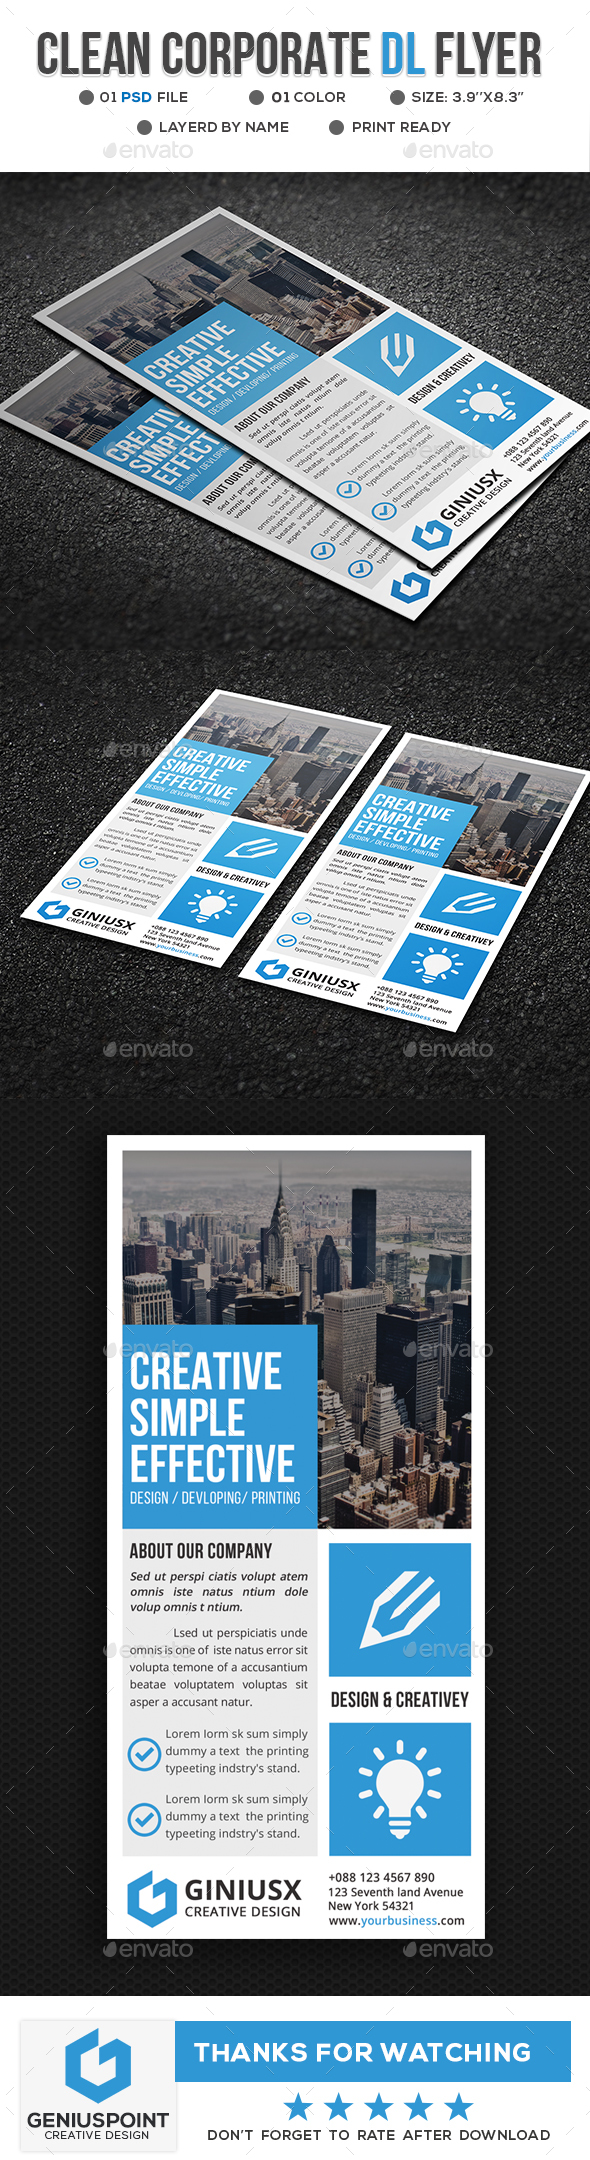 Corporate DL Flyer Template - Corporate Flyers